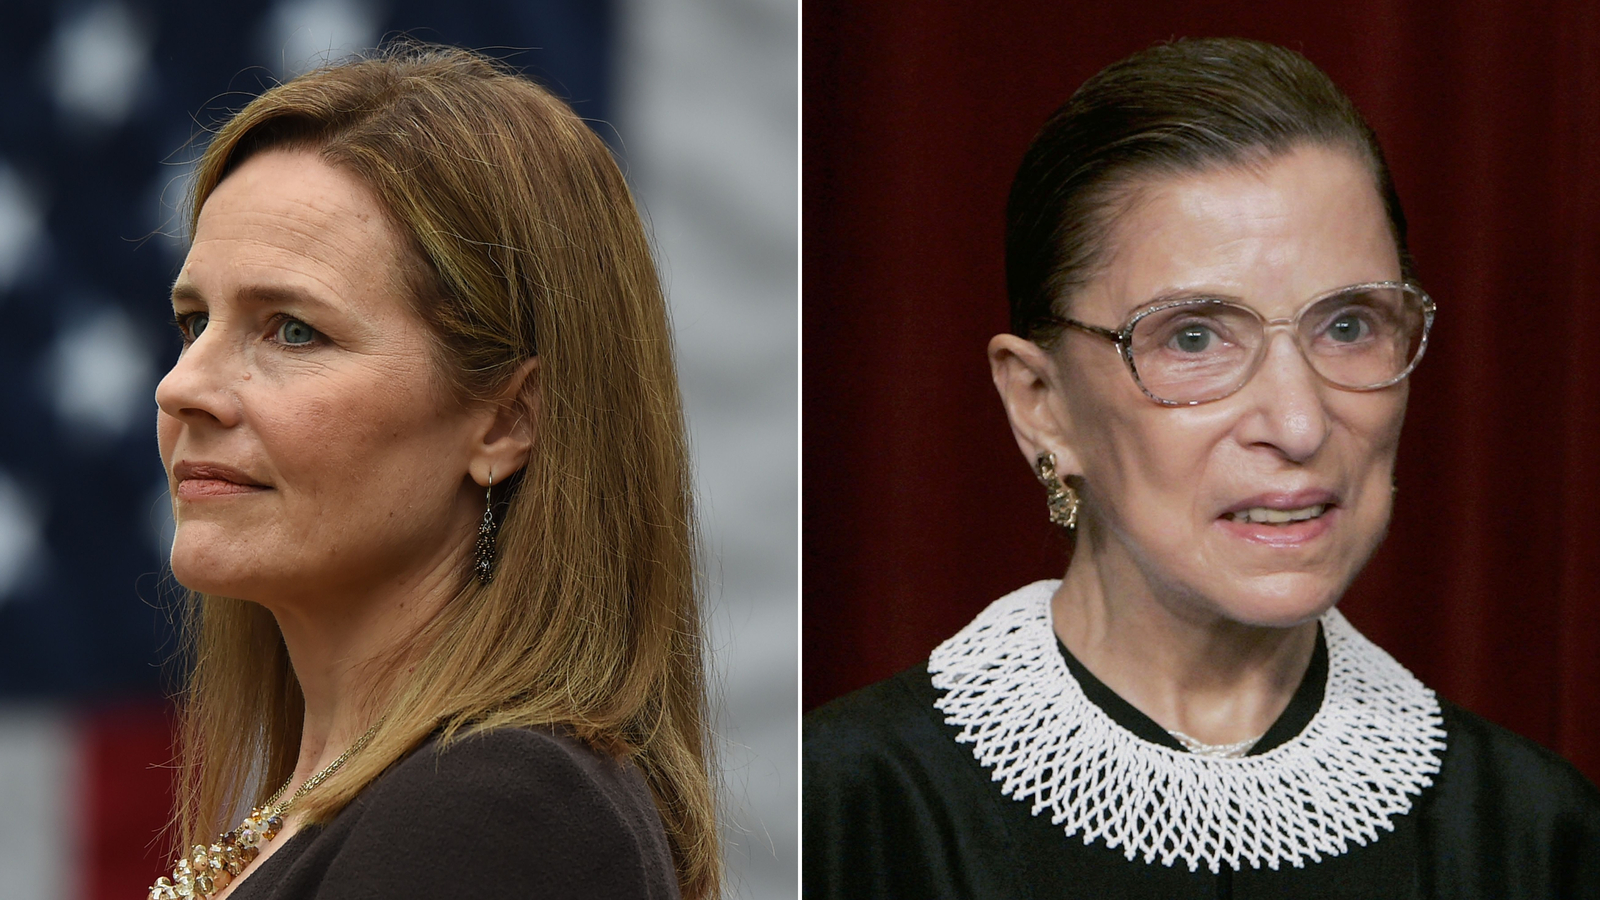 From left, Amy Coney Barrett and Justice Ruth Bader Ginsburg.